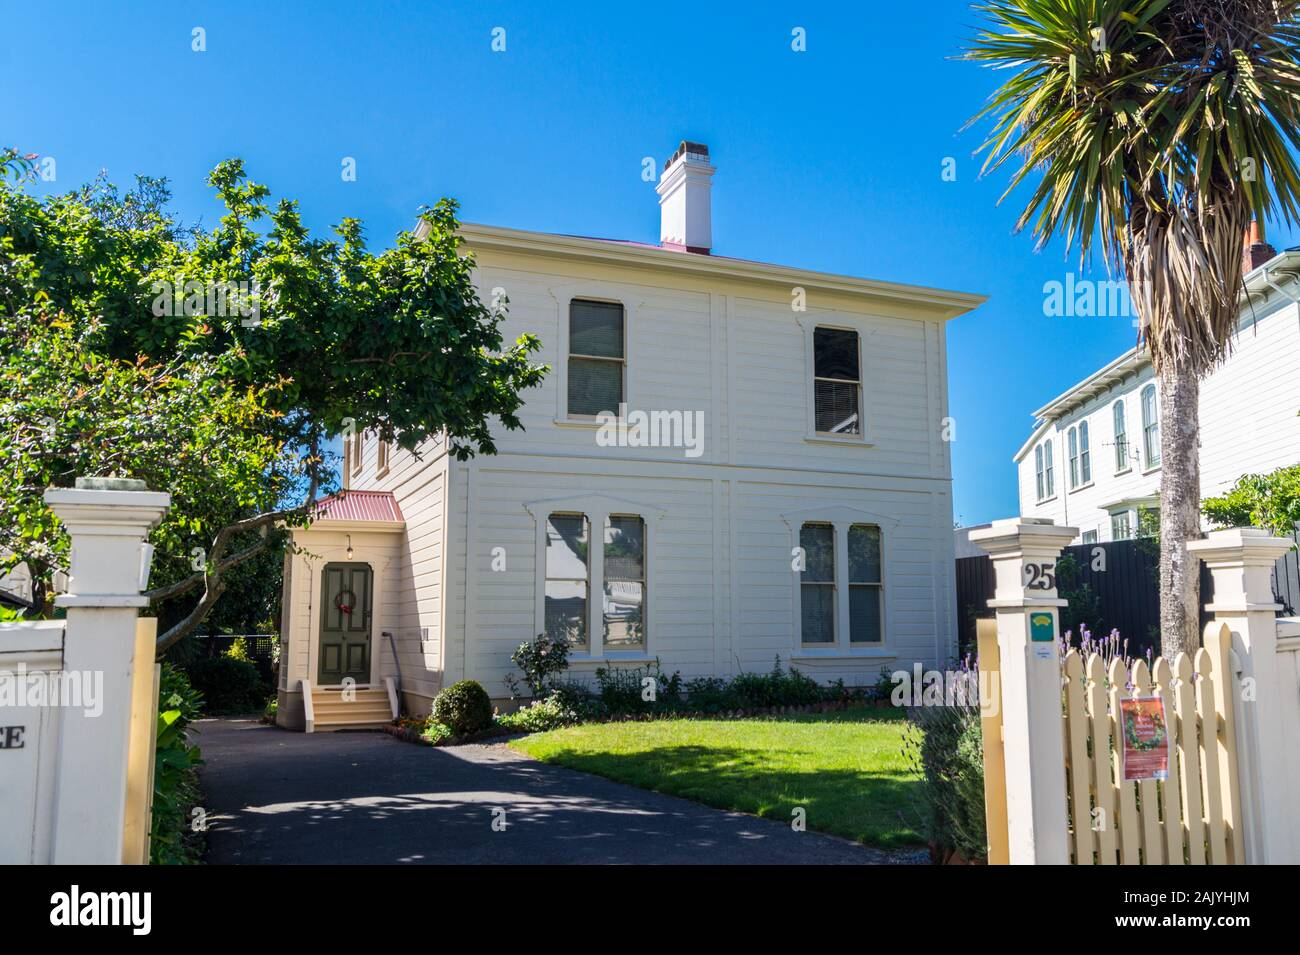 katherine-mansfield-house-birthplace-of-the-writer-1888-1923-wellington-new-zealand-2AJYHJM.jpg